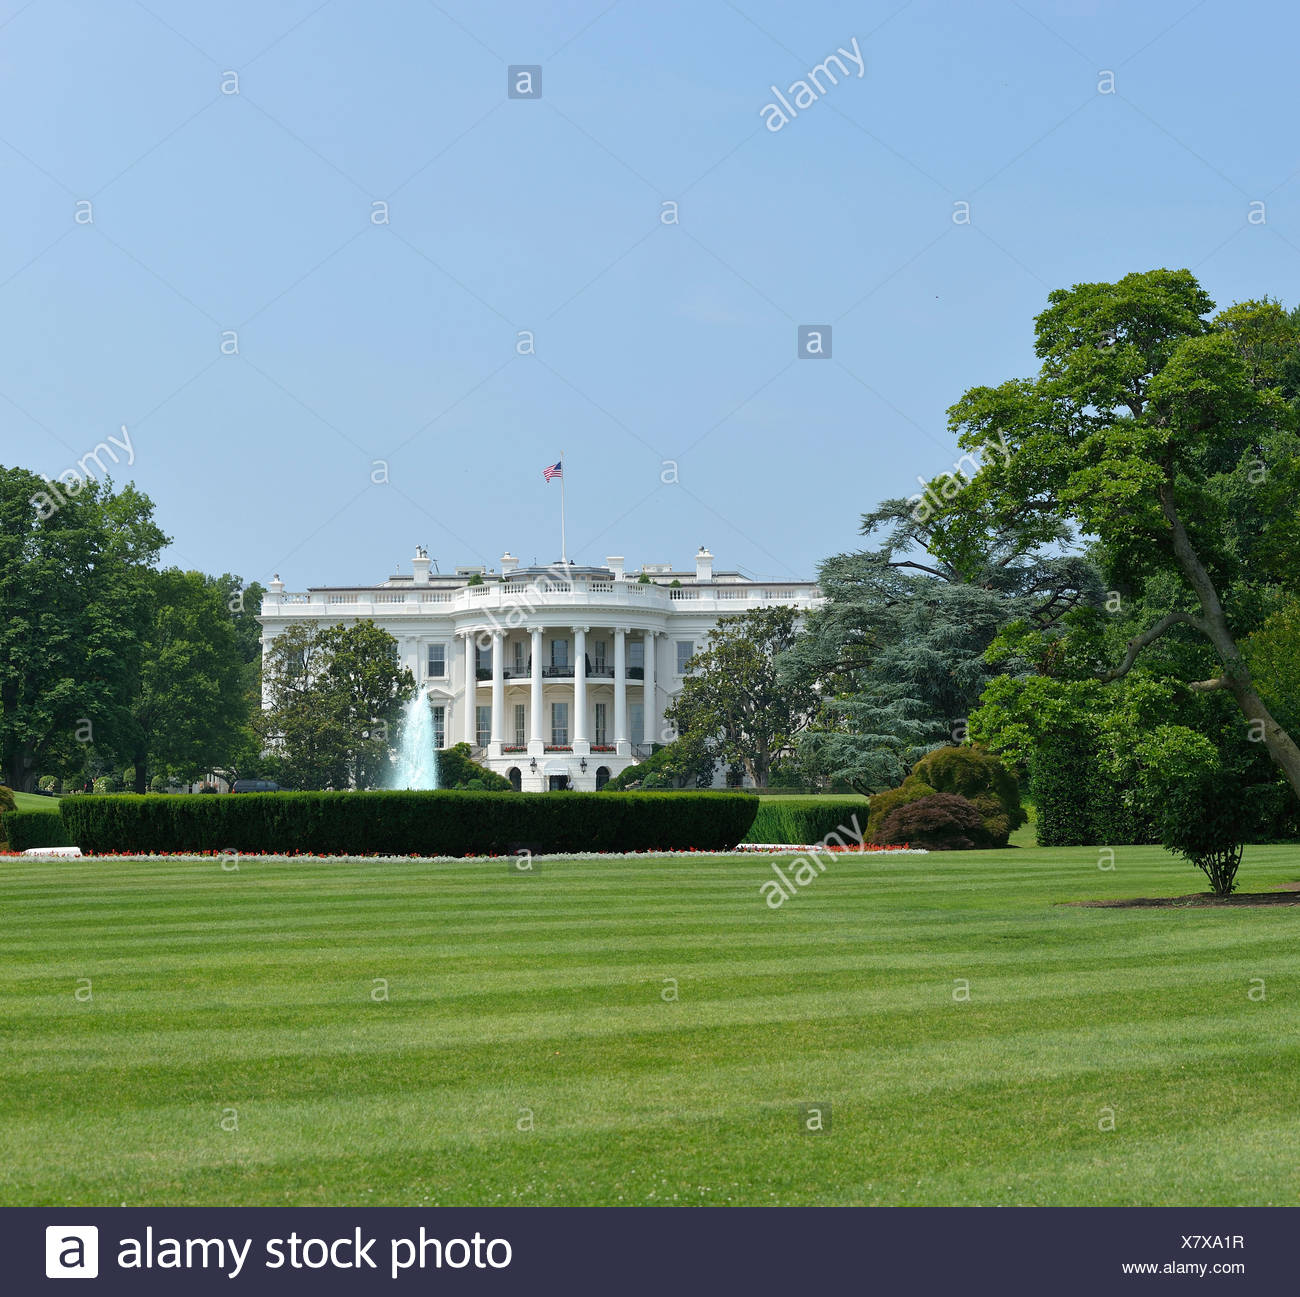 White House, The Mall, Washington D.C., District of Columbia, USA, United States, America, grass - Stock Image